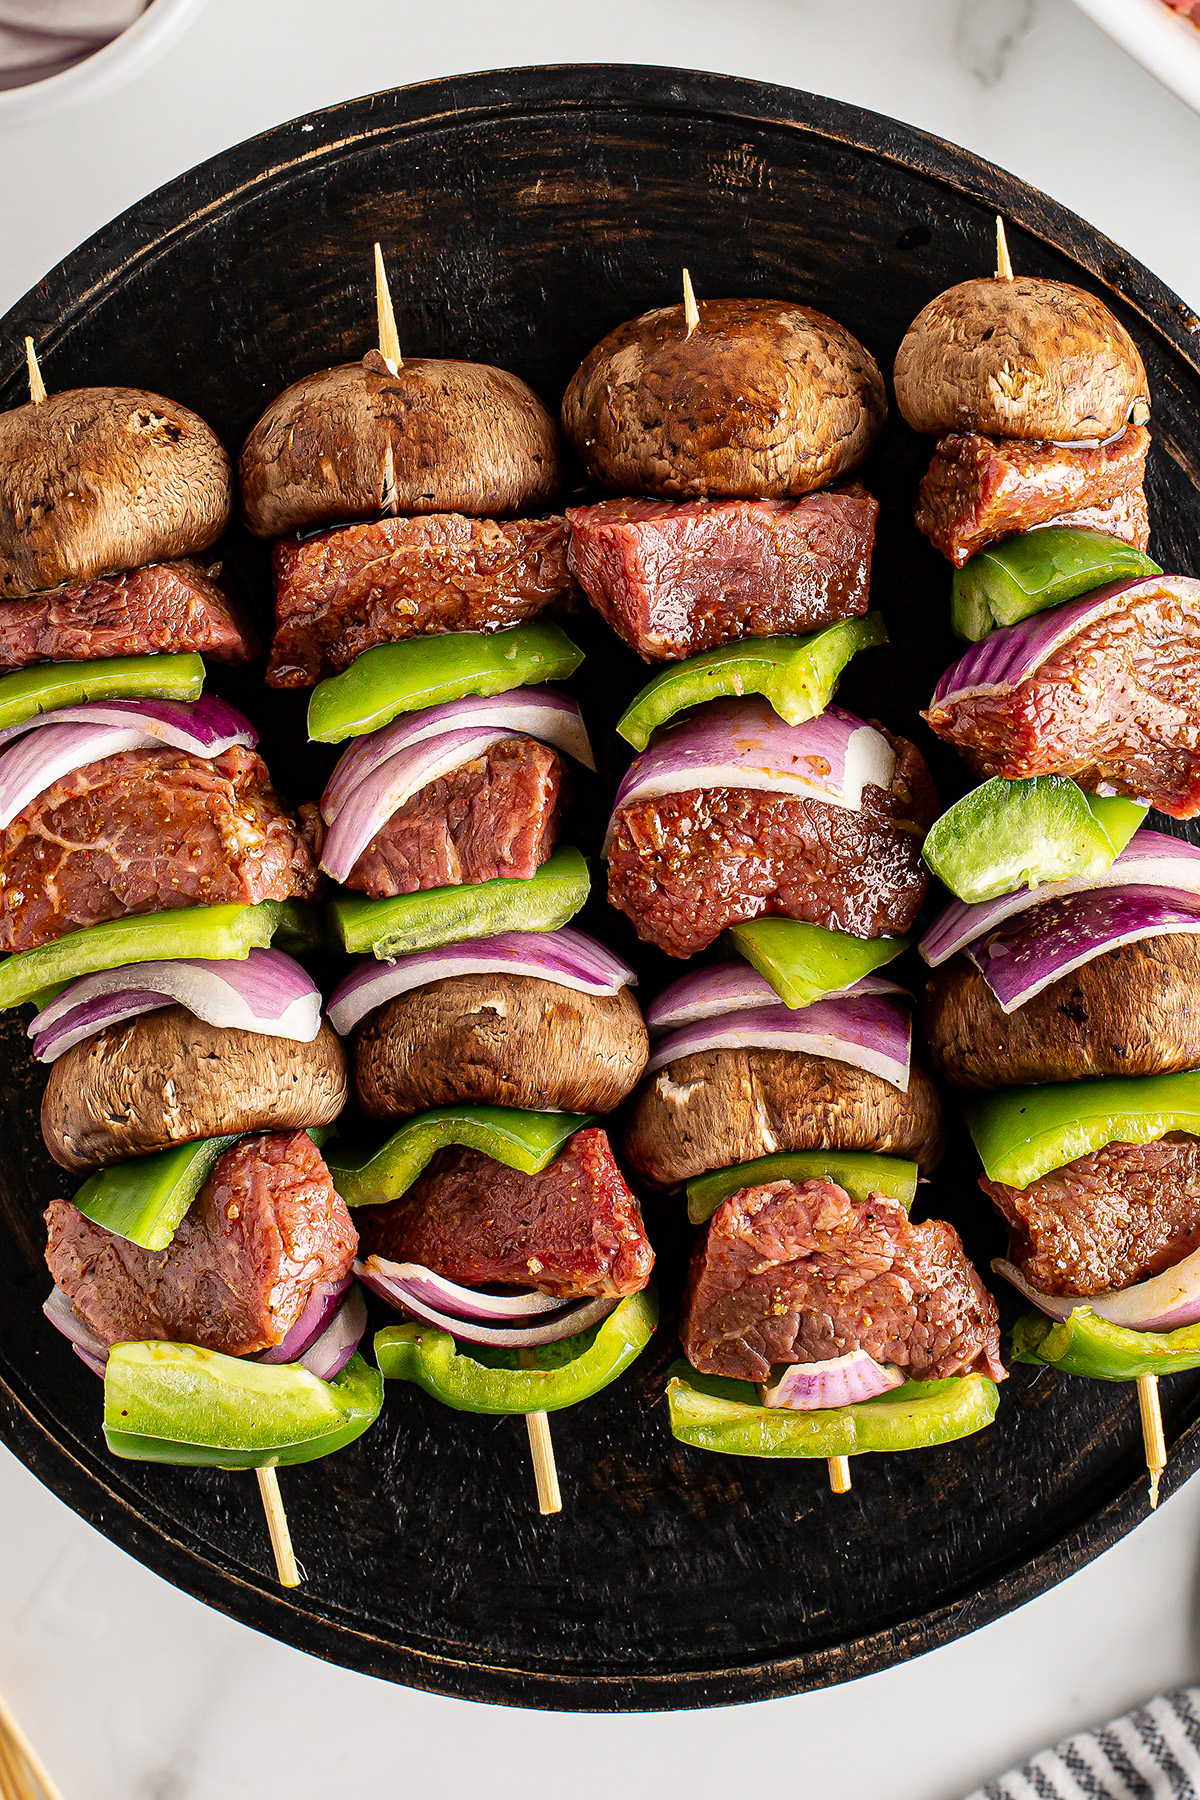 Overhead view of cooked steak kabobs on a black plate